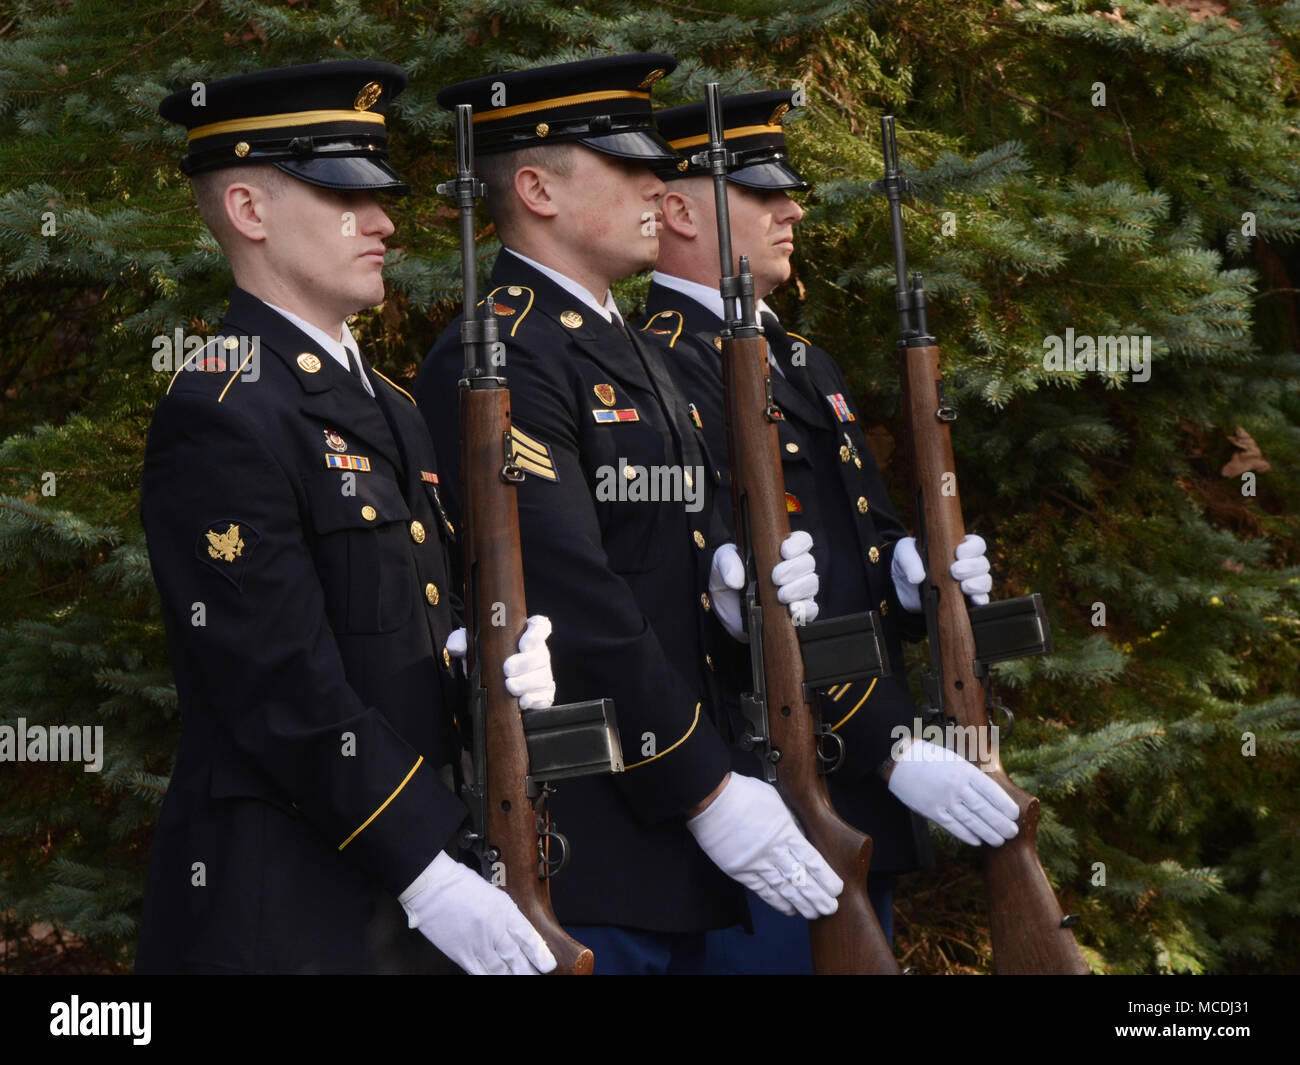 A firing party team of Oregon Army National Guard Soldiers consisting of Specialist Michael Banks, Sergeant Everett Mayers and Specialist Isaac Yocum (left to right), present a full rifle salute while supporting a Navy funeral at Willamette National Cemetery, Portland, Ore., Feb. 7, 2018.  (U.S. Air National Guard photo by Master Sgt. John Hughel, 142nd Fighter Wing Public Affairs) - Stock Image